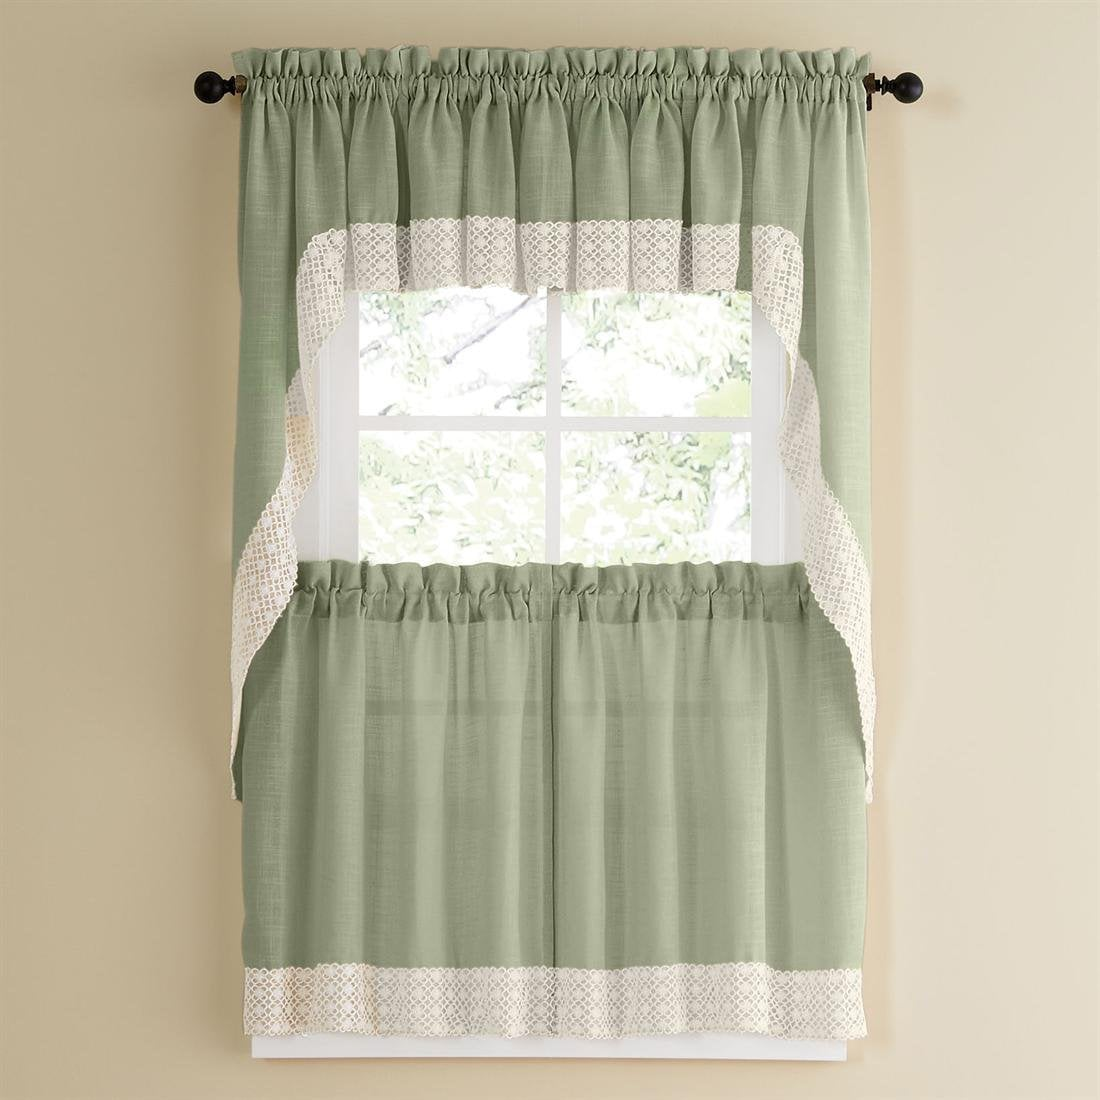 Sage Country Style Curtain Parts with White Daisy Lace Accent